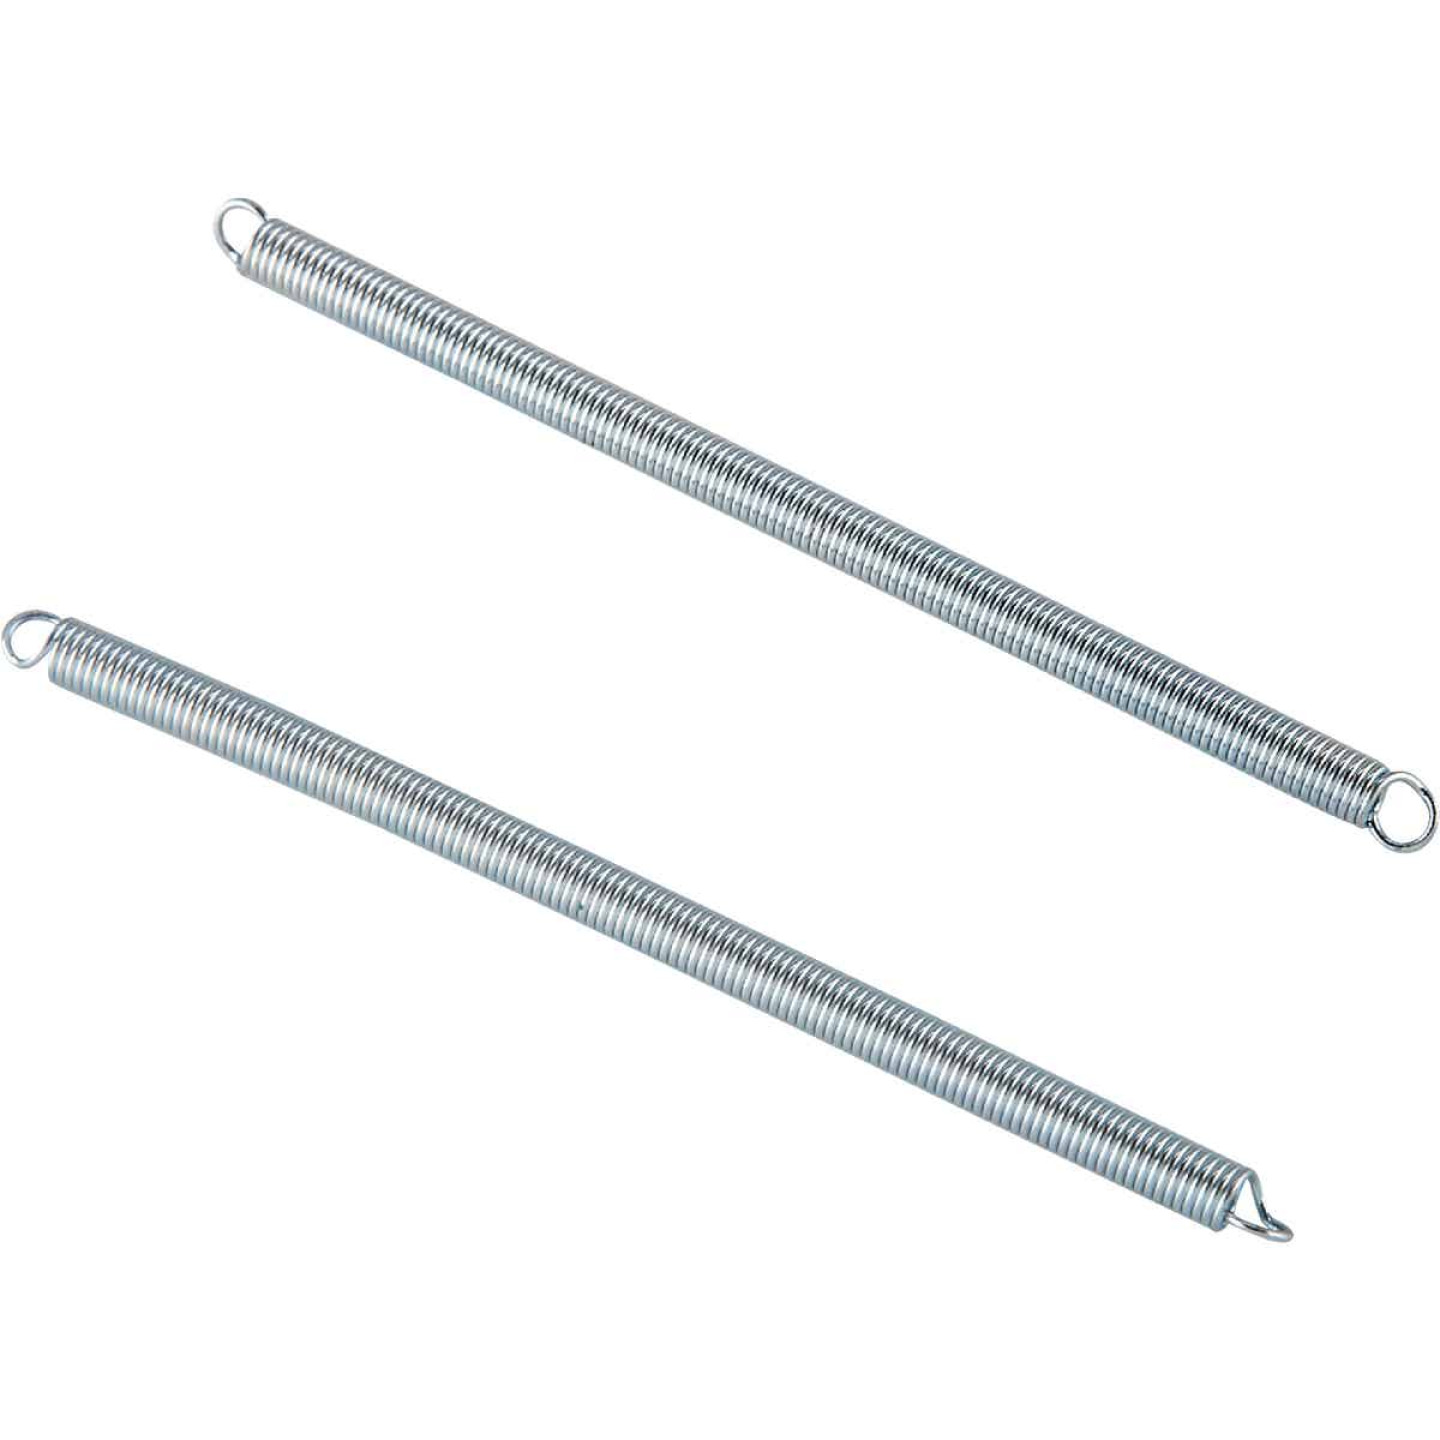 Century Spring 1-7/8 In. x 5/32 In. Extension Spring (2 Count) Image 1